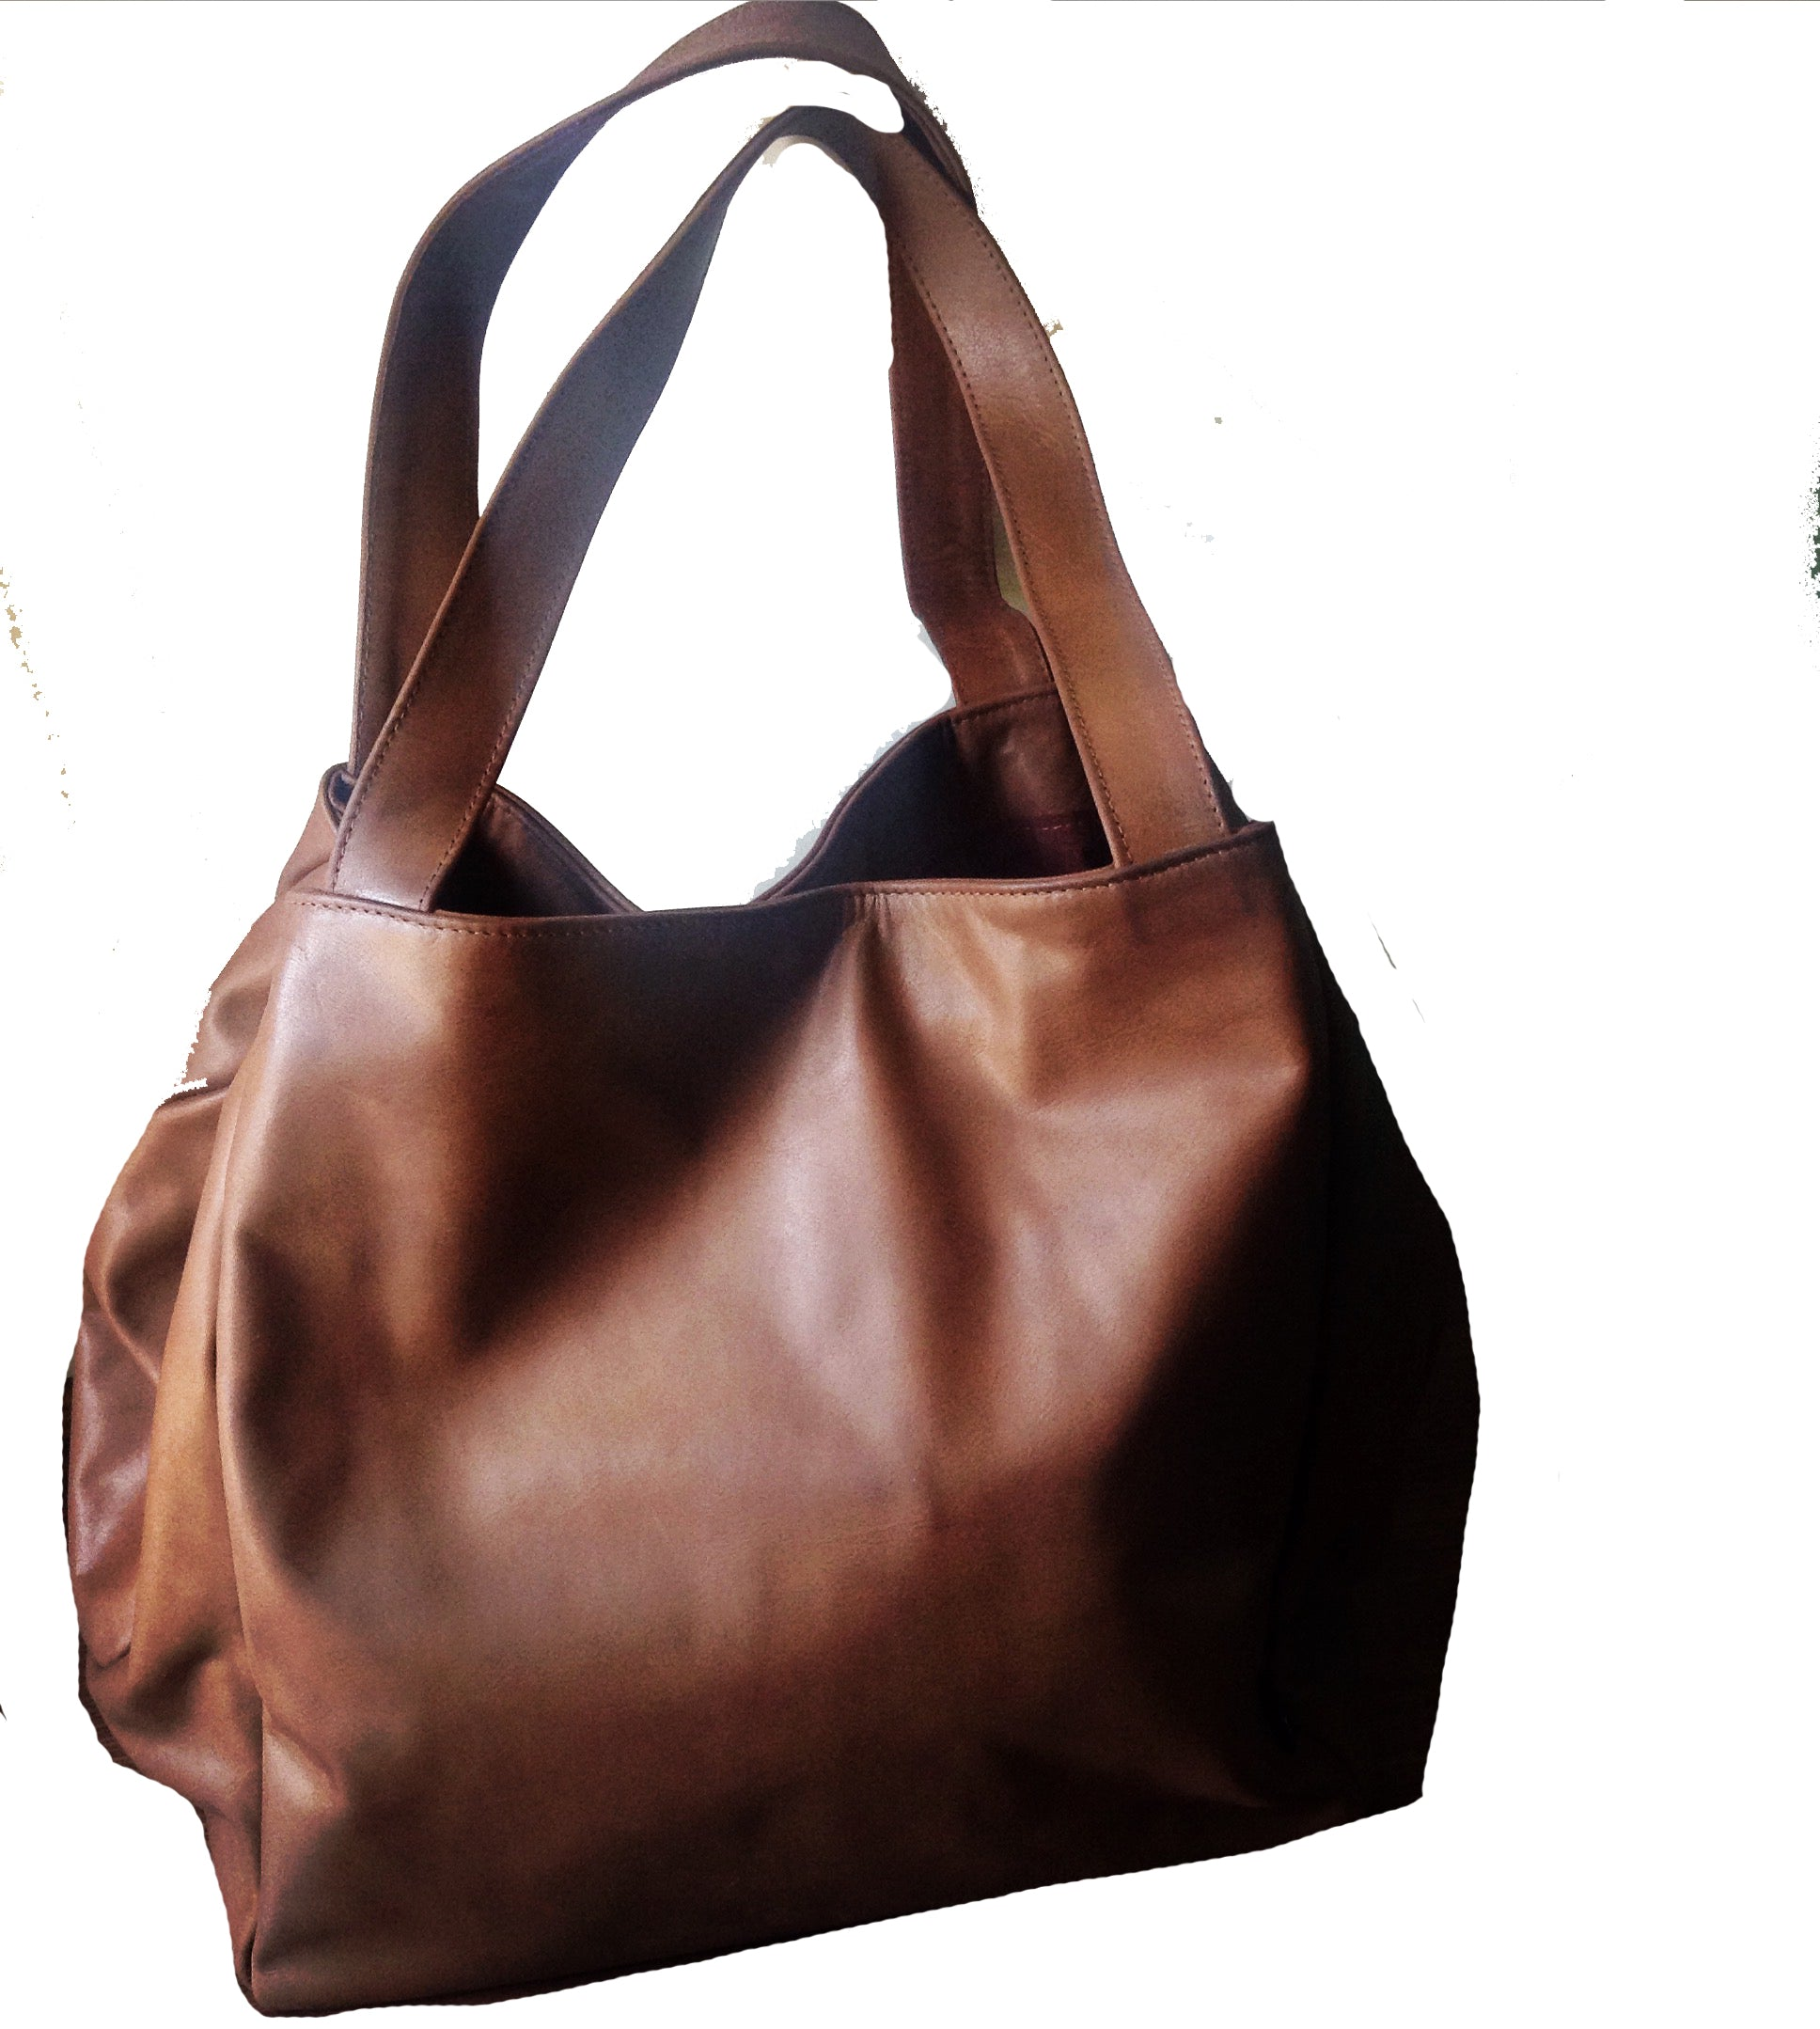 The Gigi - Extra Large genuine leather tote bag. Square shaped Travel bag d8a61f22693da